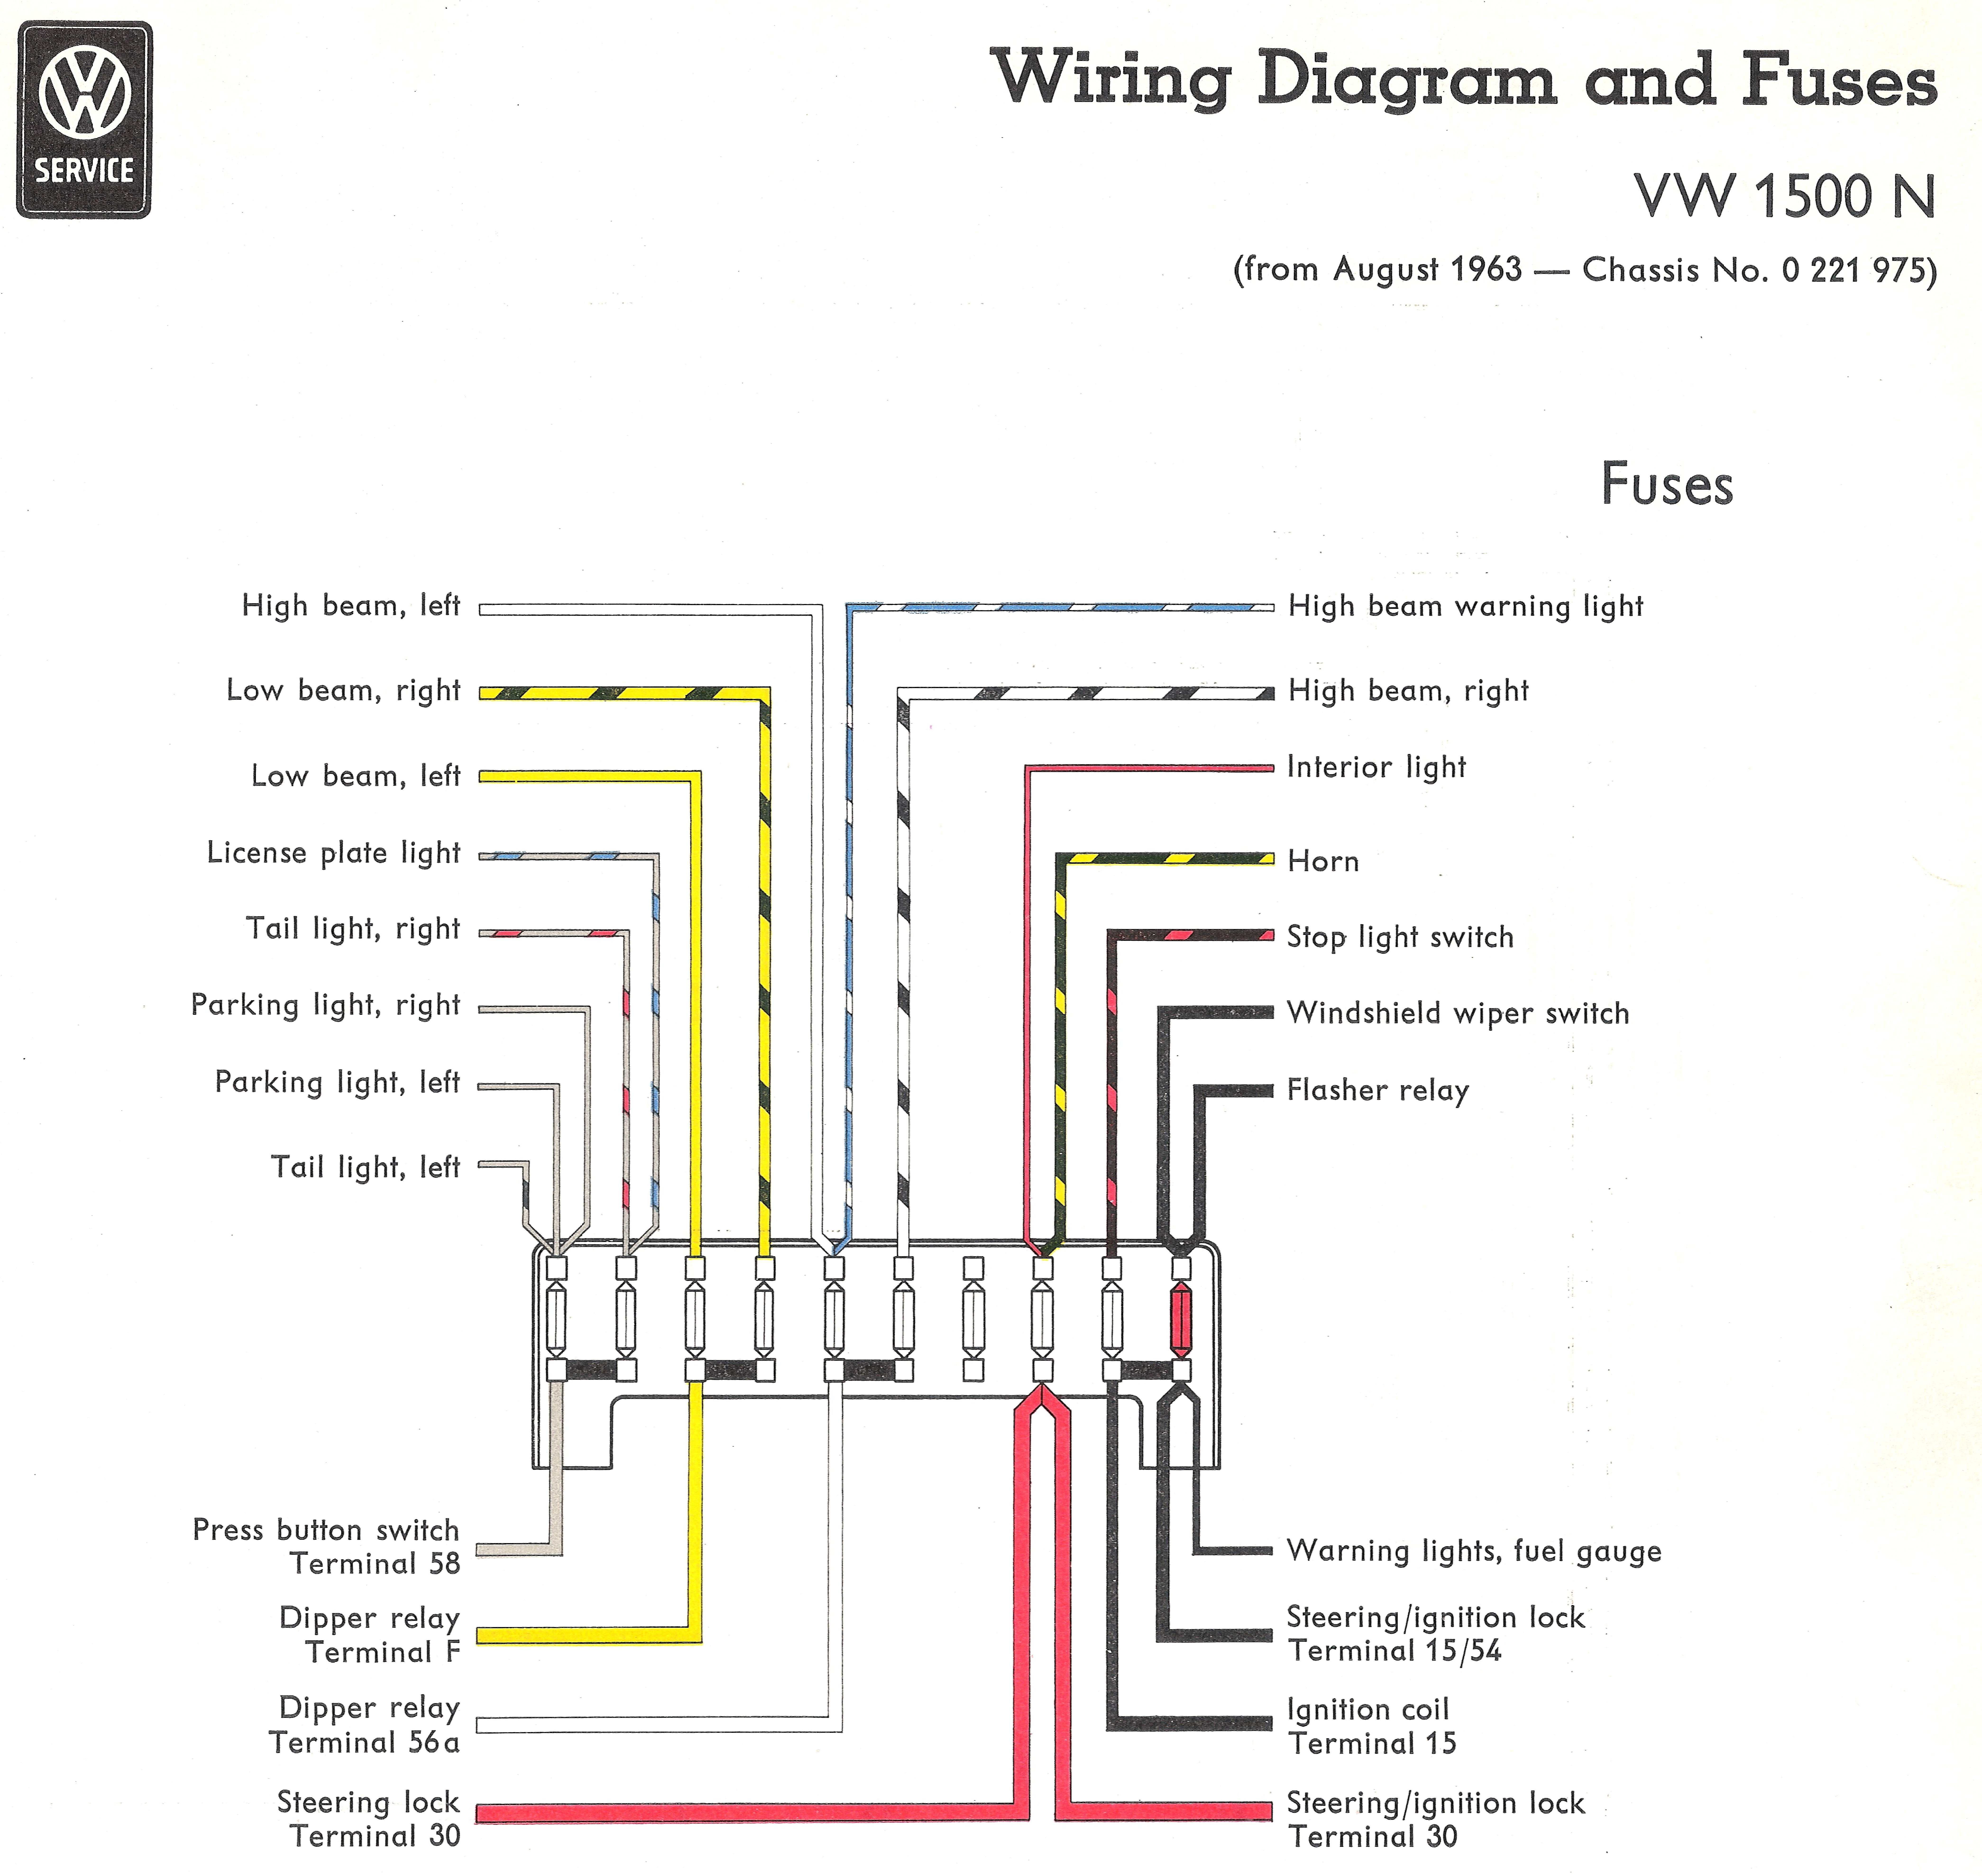 Fuse Wiring Diagram Wiring Diagram Schematics 88 Mustang GT Fuse Box Diagram  Fuse Wiring Diagram